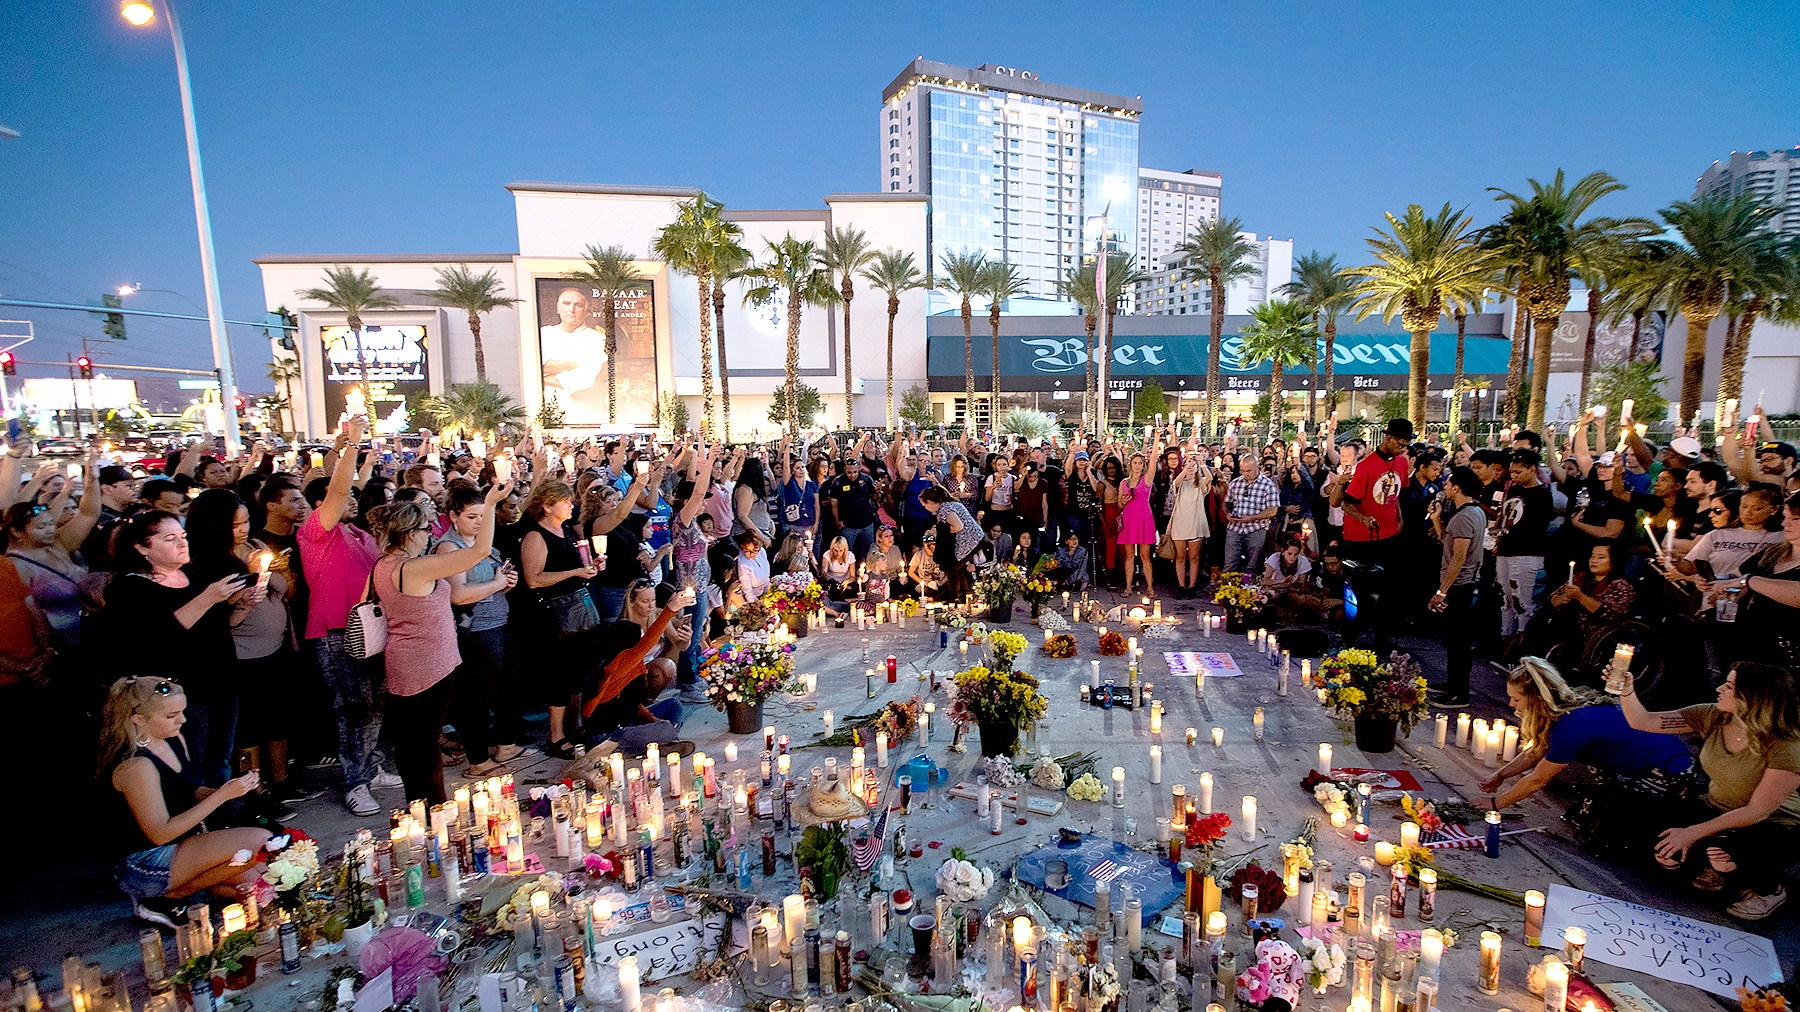 Mourners hold their candles in the air during a moment of silence during a vigil to mark one week since the mass shooting at the Route 91 Harvest country music festival, on the corner of Sahara Avenue and Las Vegas Boulevard at the north end of the Las Vegas Strip, on October 8, 2017 in Las Vegas, Nevada.